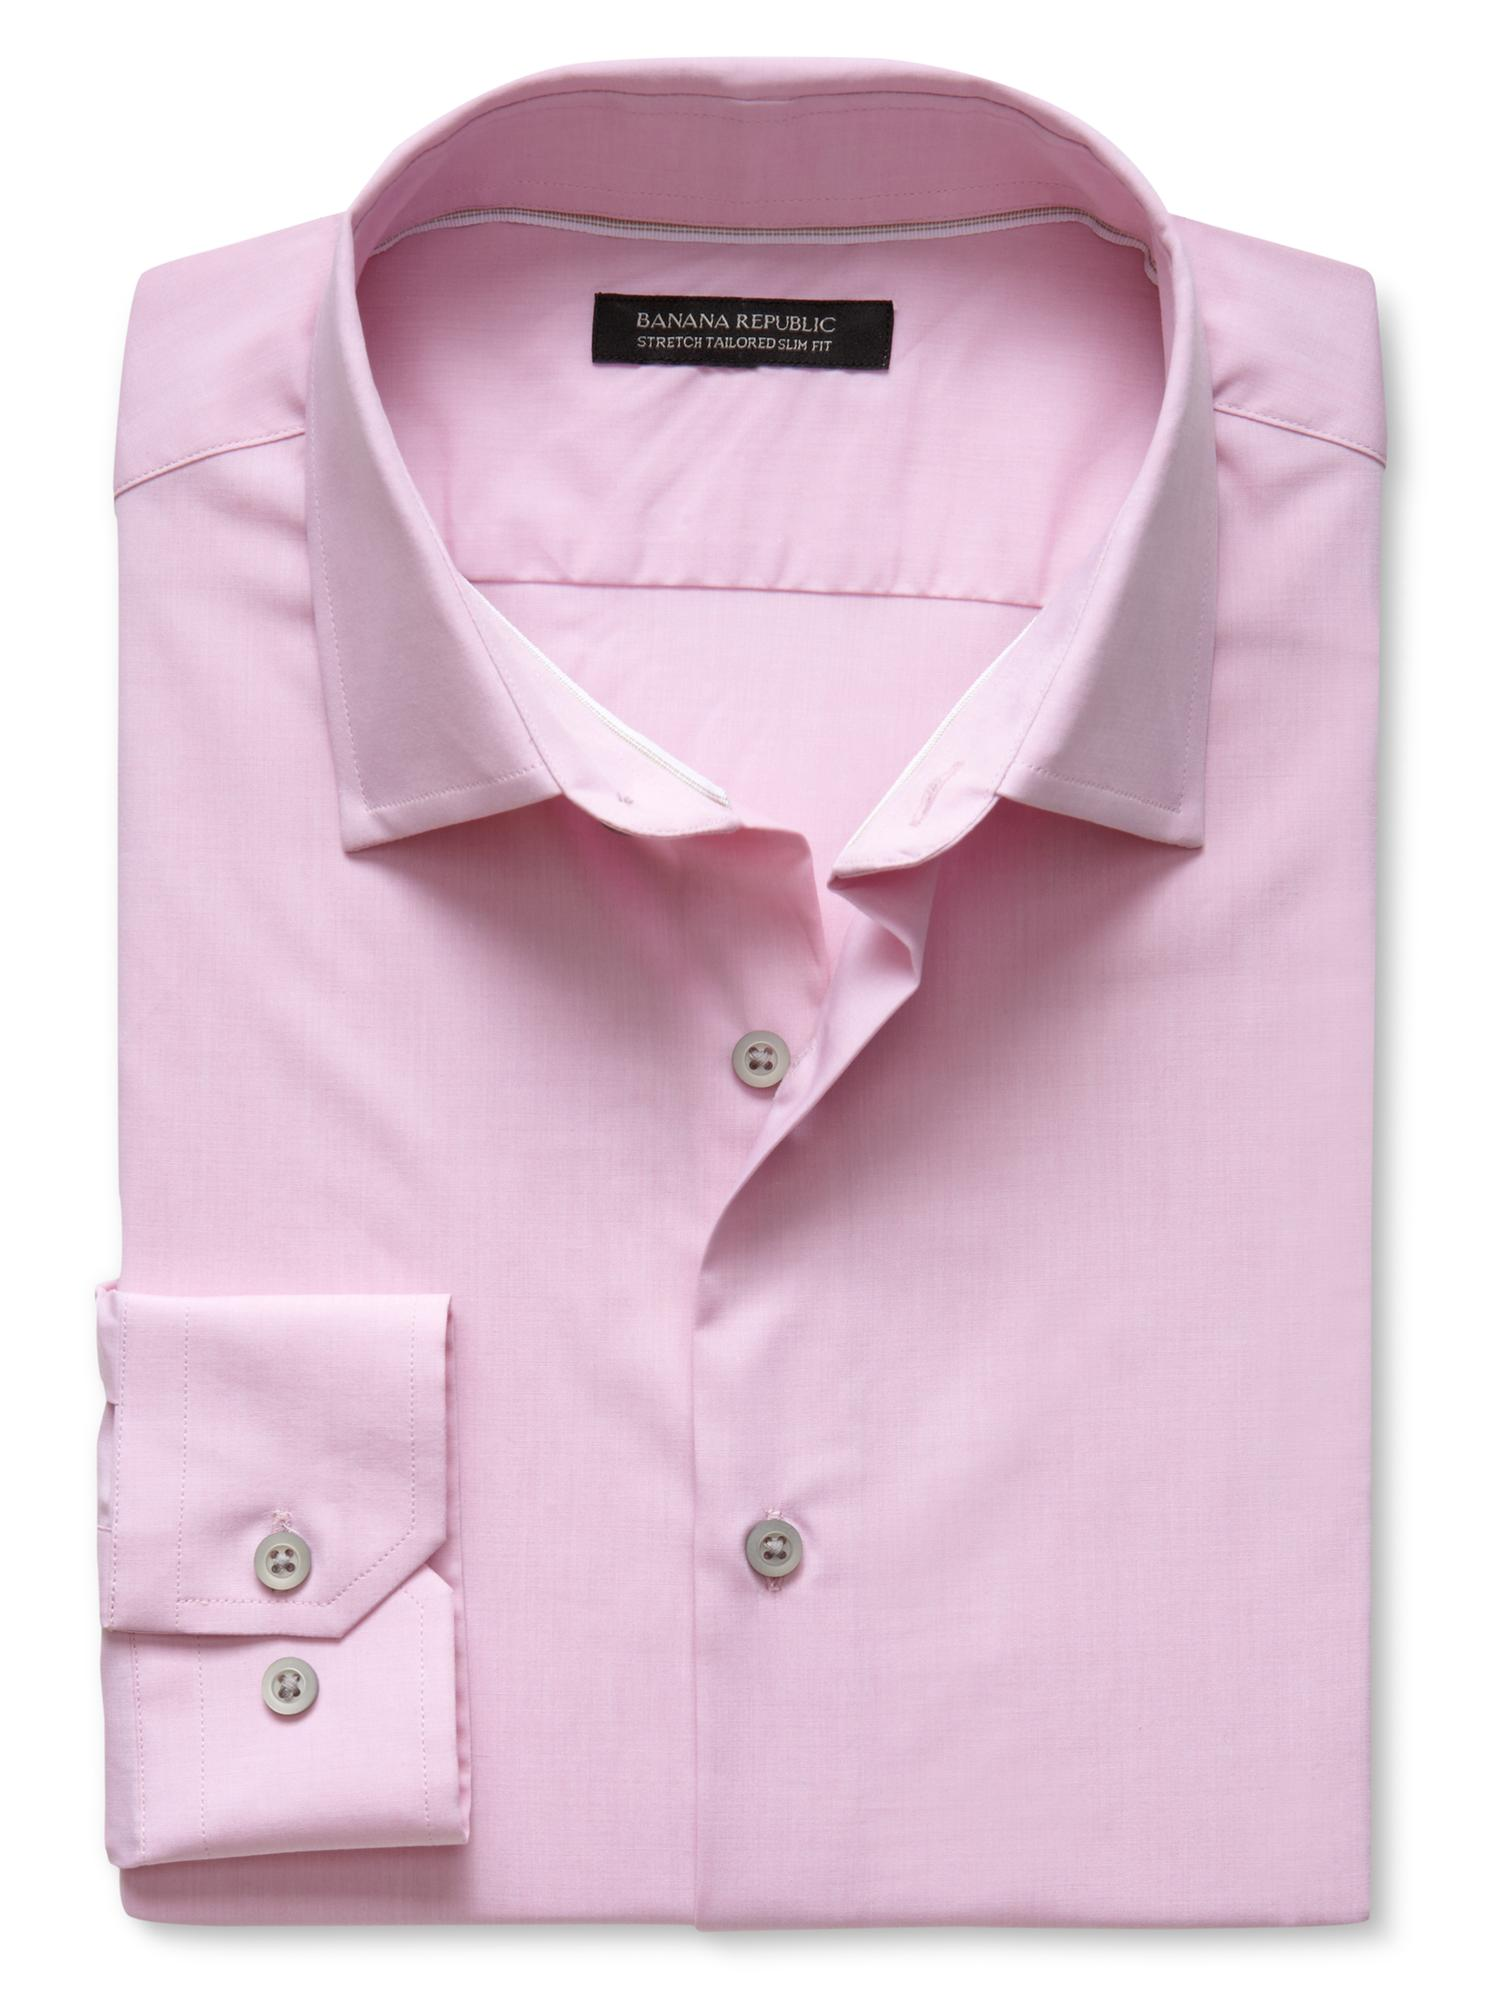 banana republic tailored slim fit stretch dress shirt in